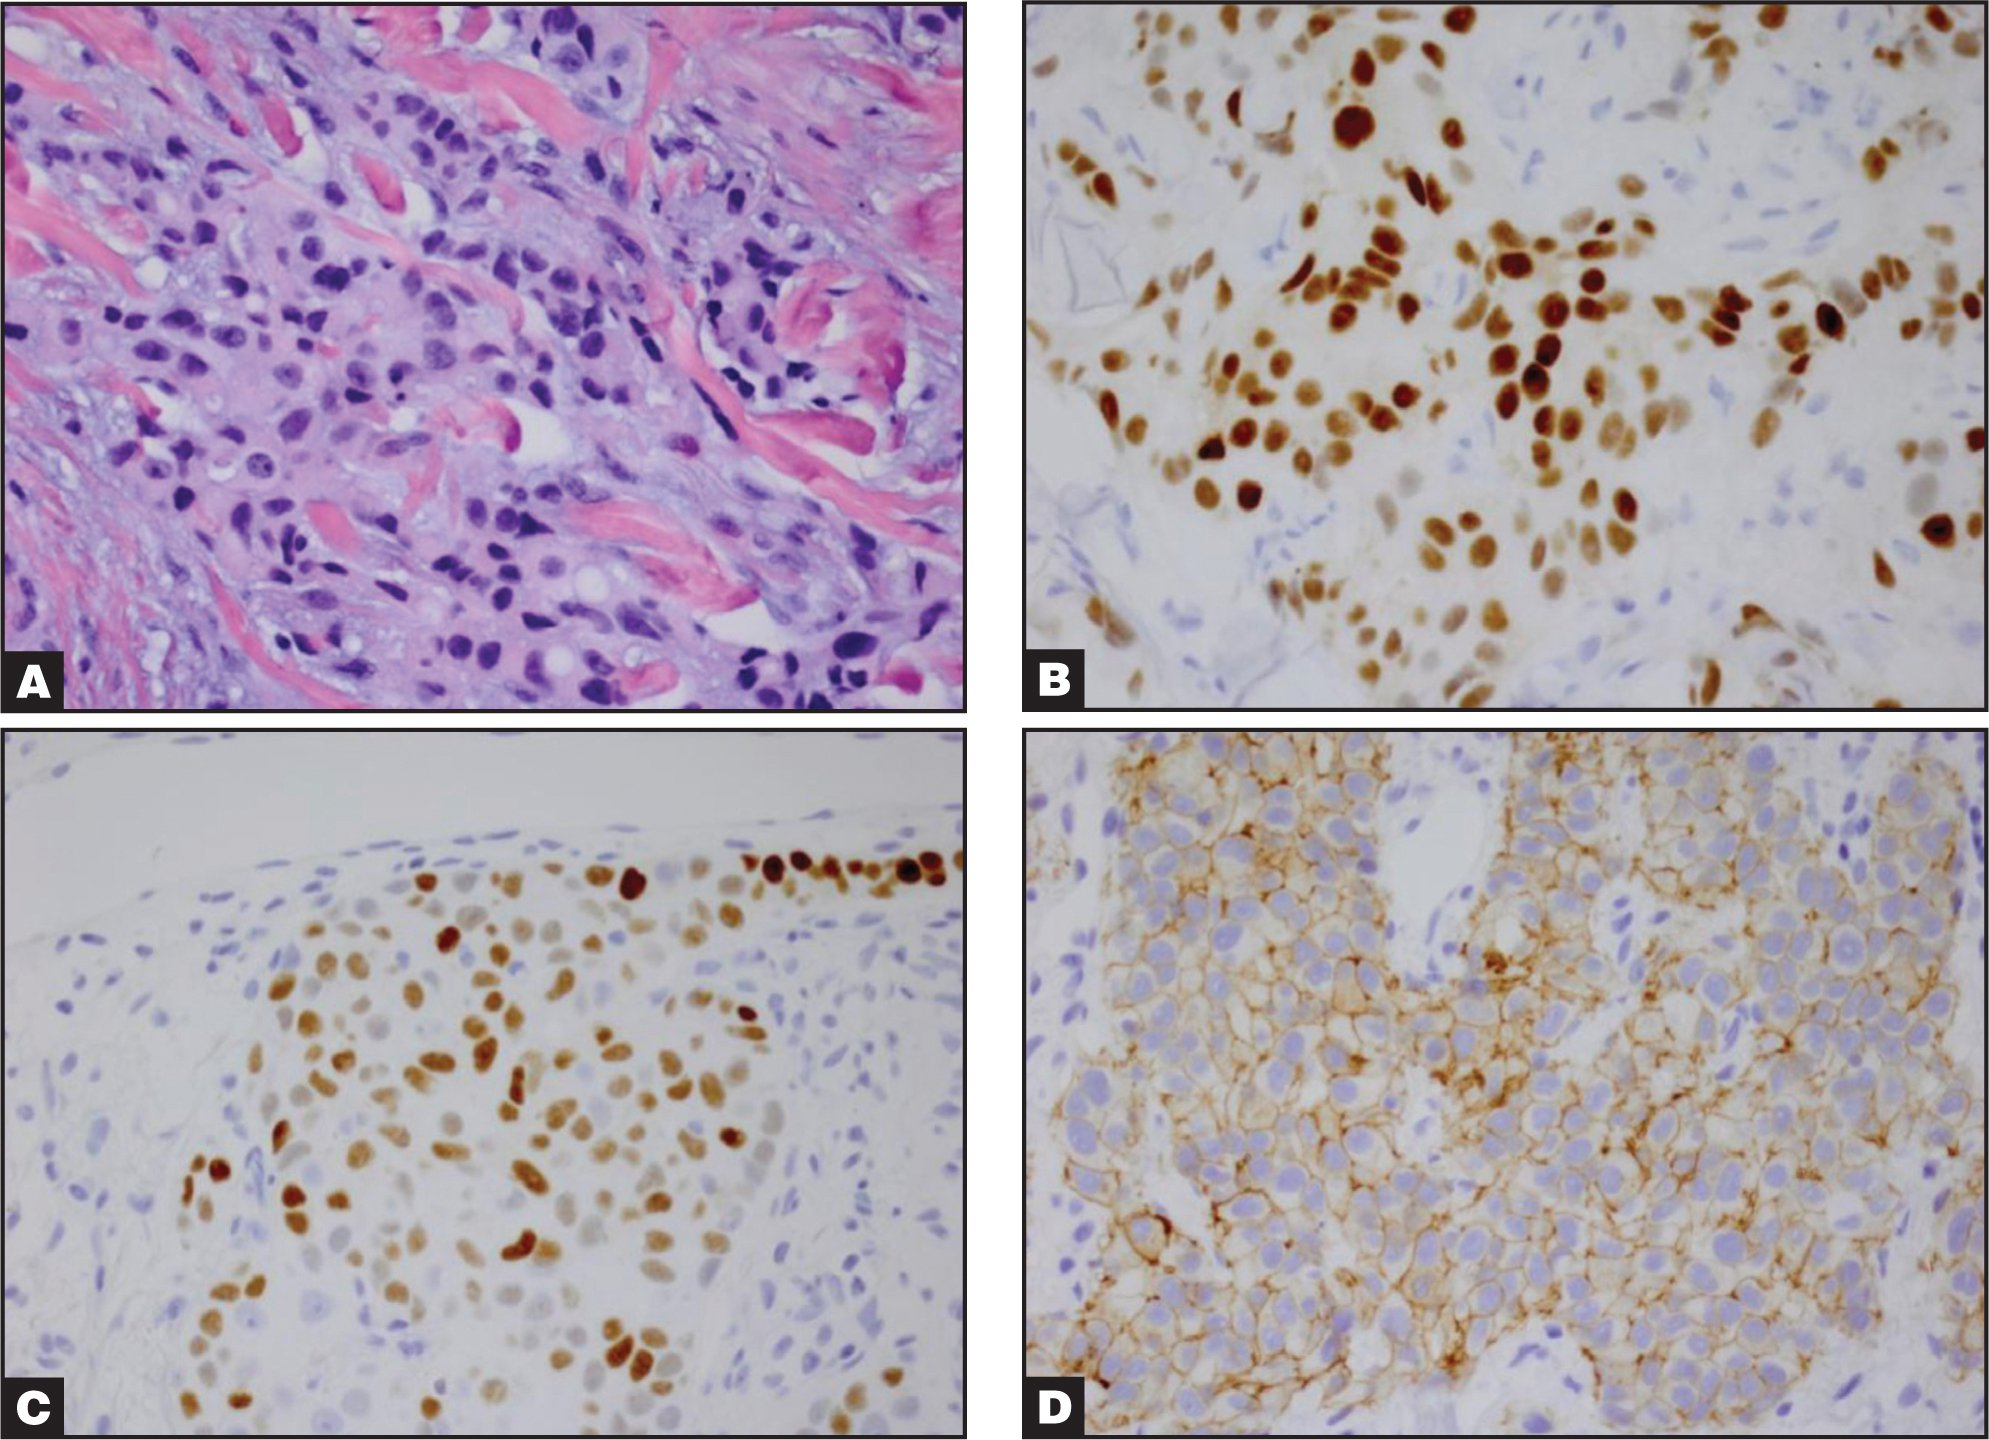 (A) The tumor cells contain pleomorphic vesiculated nuclei, prominent nucleoli, and abundant eosinophilic cytoplasm (hematoxylin and eosin 100×). (B) Immunohisochemical stains are positive for progesterone receptor in tumor cell nuclei (peroxidase-antiperoxidase 100×). (C) Immunohistochemical stains are positive for estrogen receptor in tumor cell nuclei (peroxidase-antiperoxidase 100×). (D) Immunohistochemical stains are positive for HER-2/neu in tumor cell membranes (peroxidase-antiperoxidase 100×).